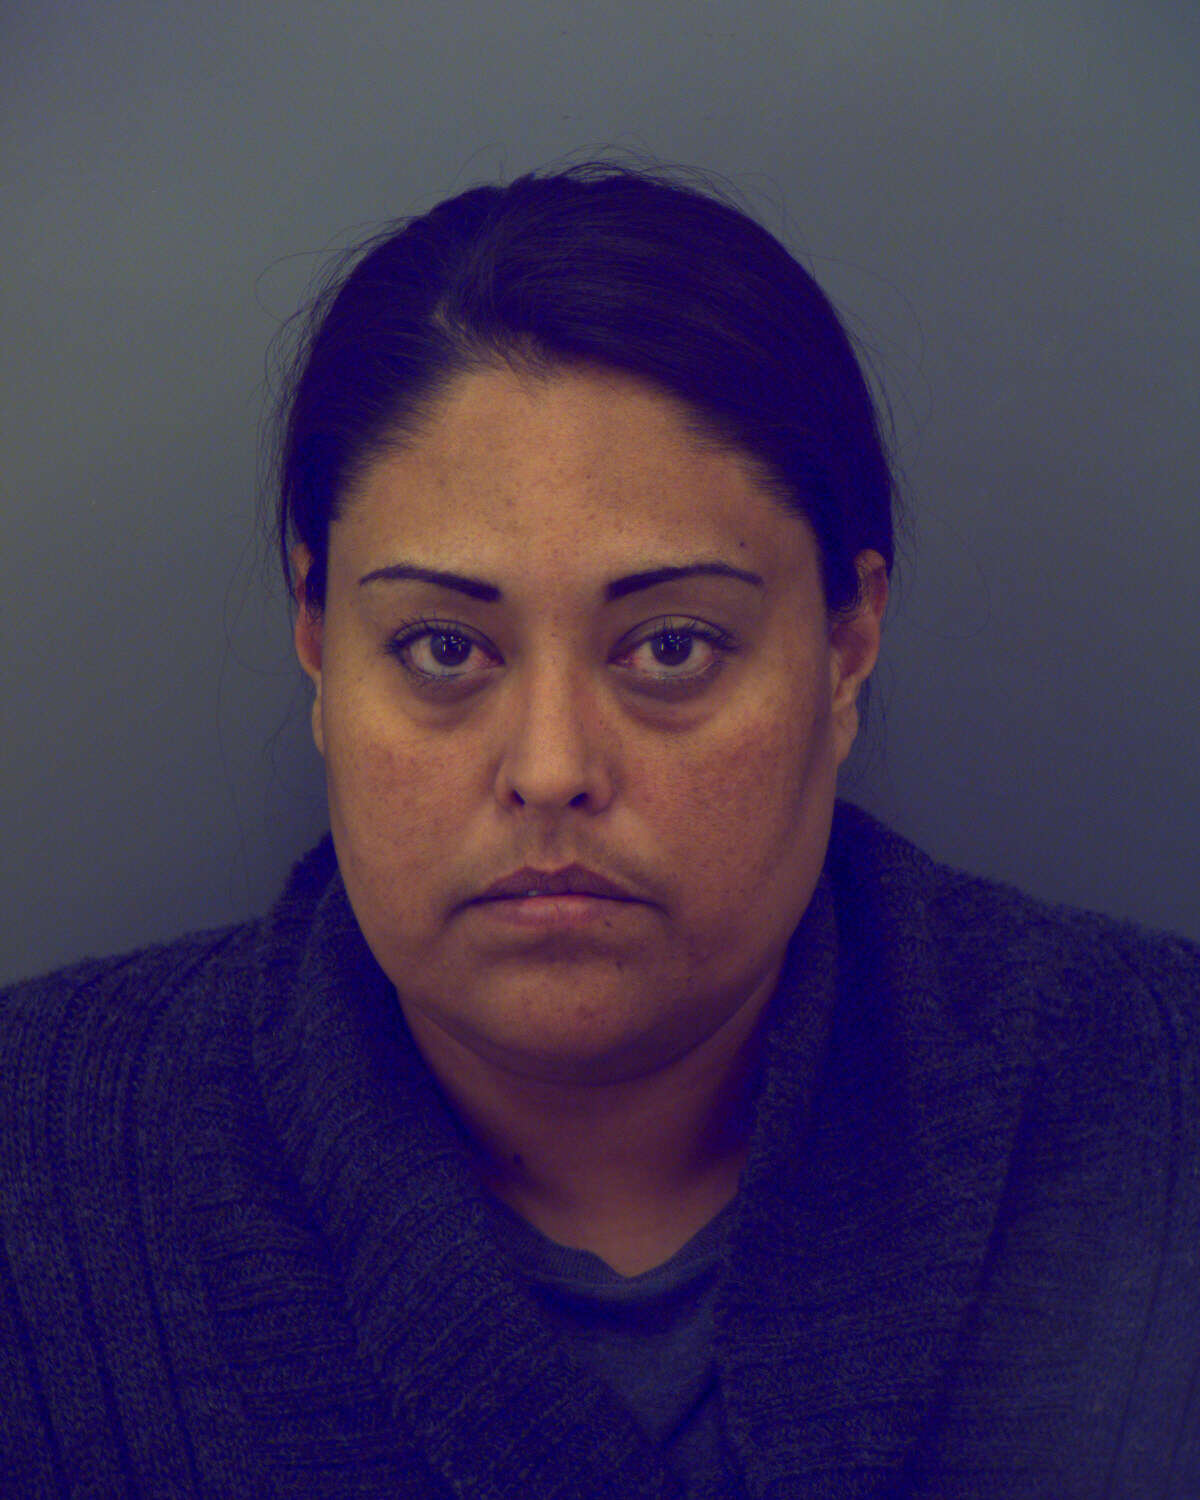 Sandra Silvas-Mendoza, 36, of Socorro was arrested by the Texas Department of Public Safety during an investigation targeting alleged members and associates of the Barrio Azteca gang and their alleged involvement with trafficking heroin and cocaine.